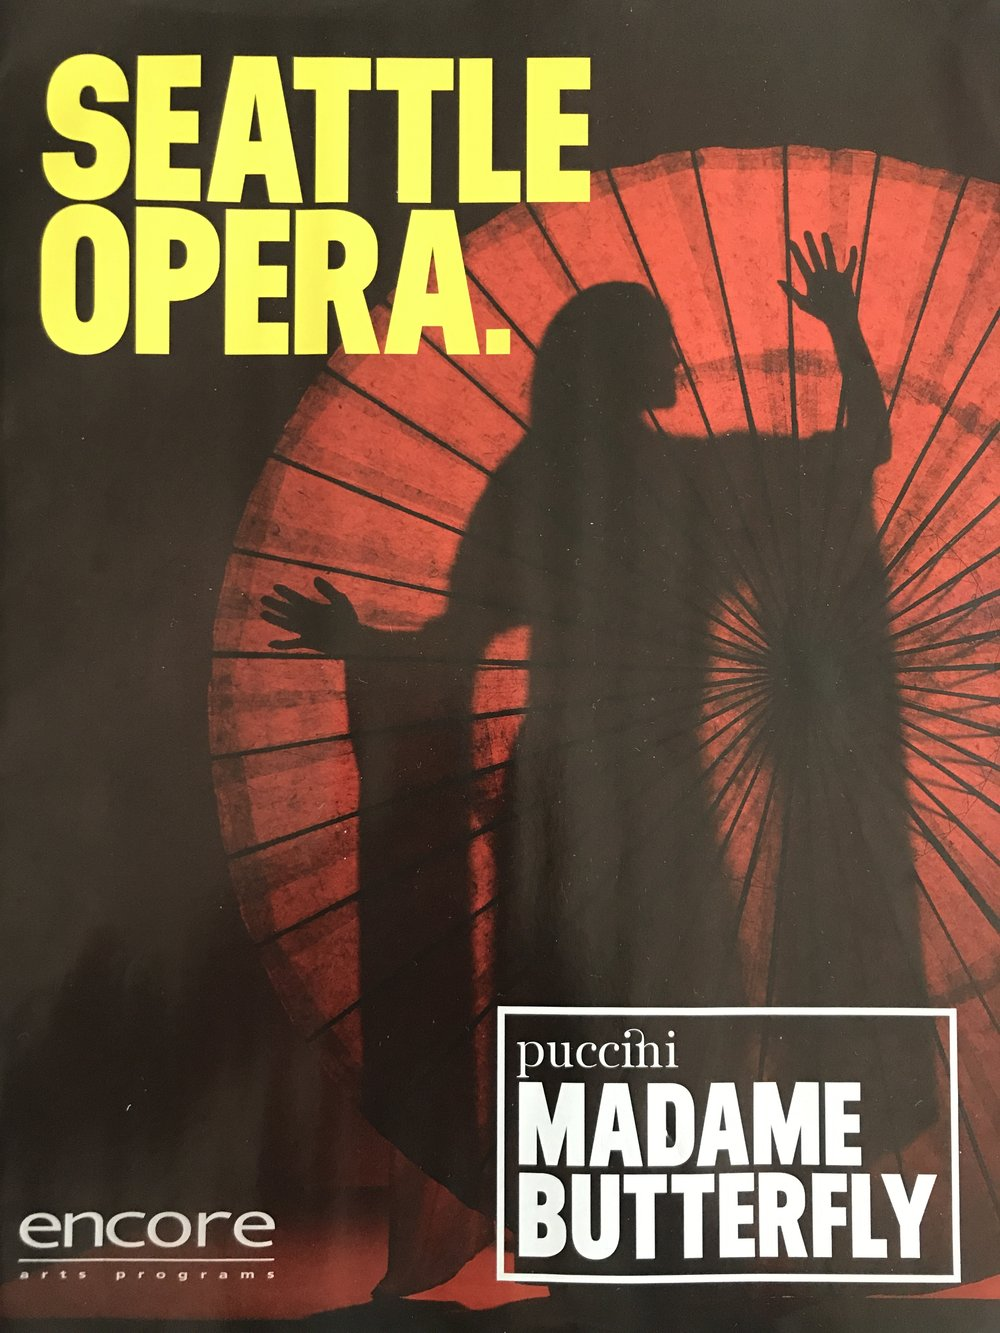 Madama Butterfly was performed at The Seattle Opera in 2017.